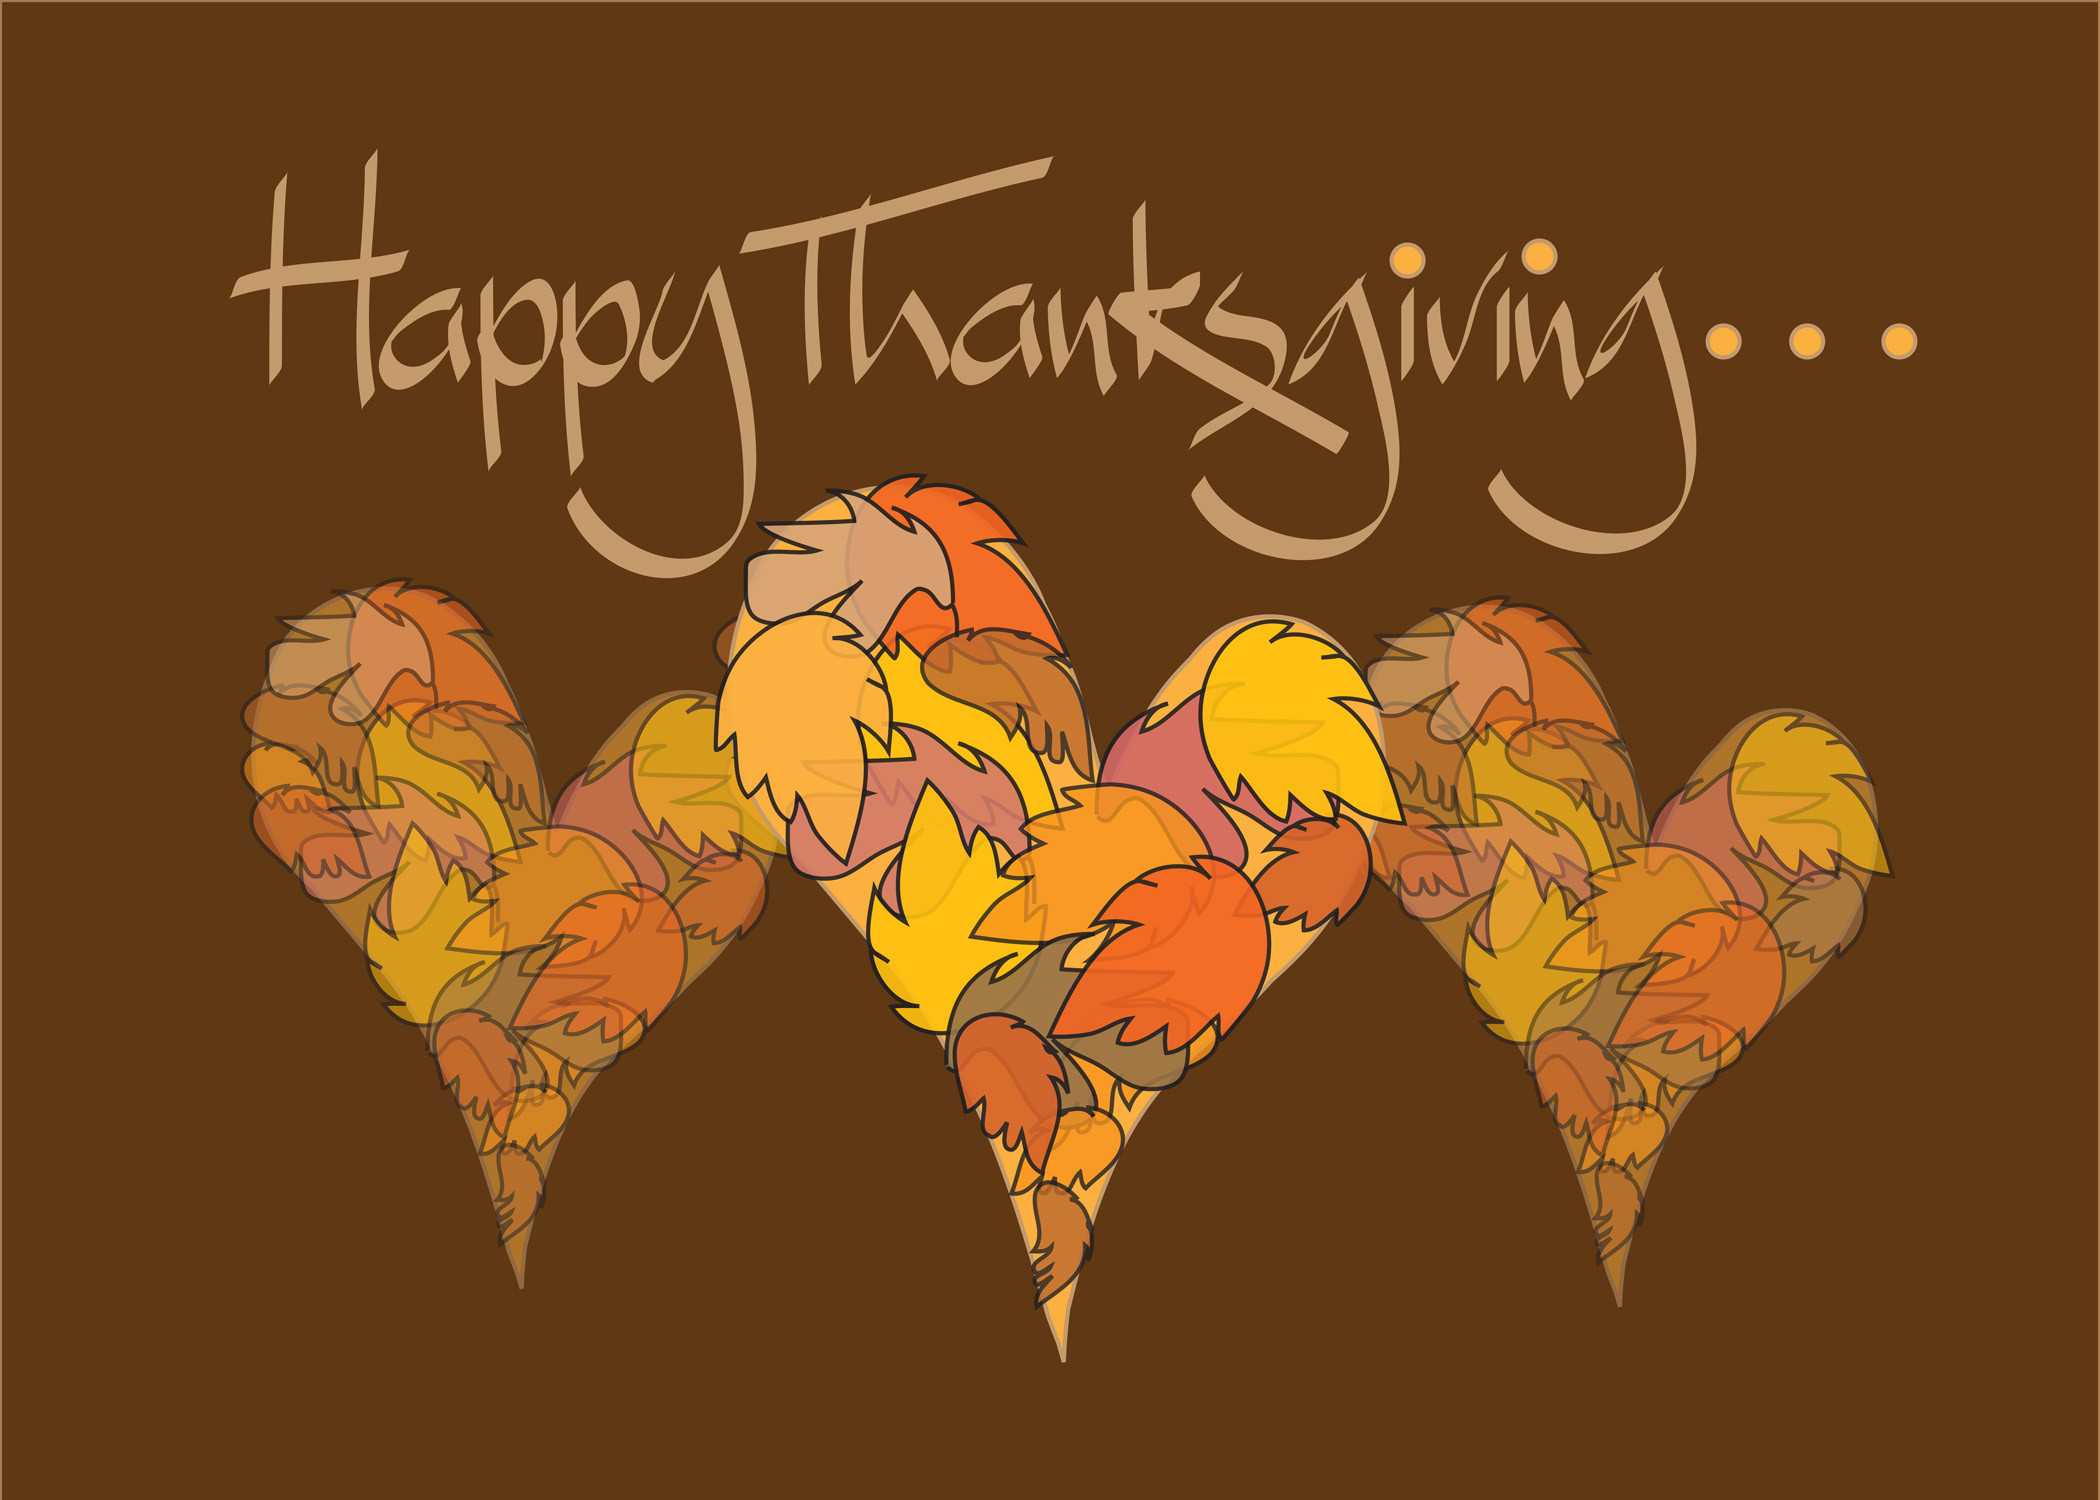 2100x1500 Thanksgiving Desktop Wallpaper for laptop. Print